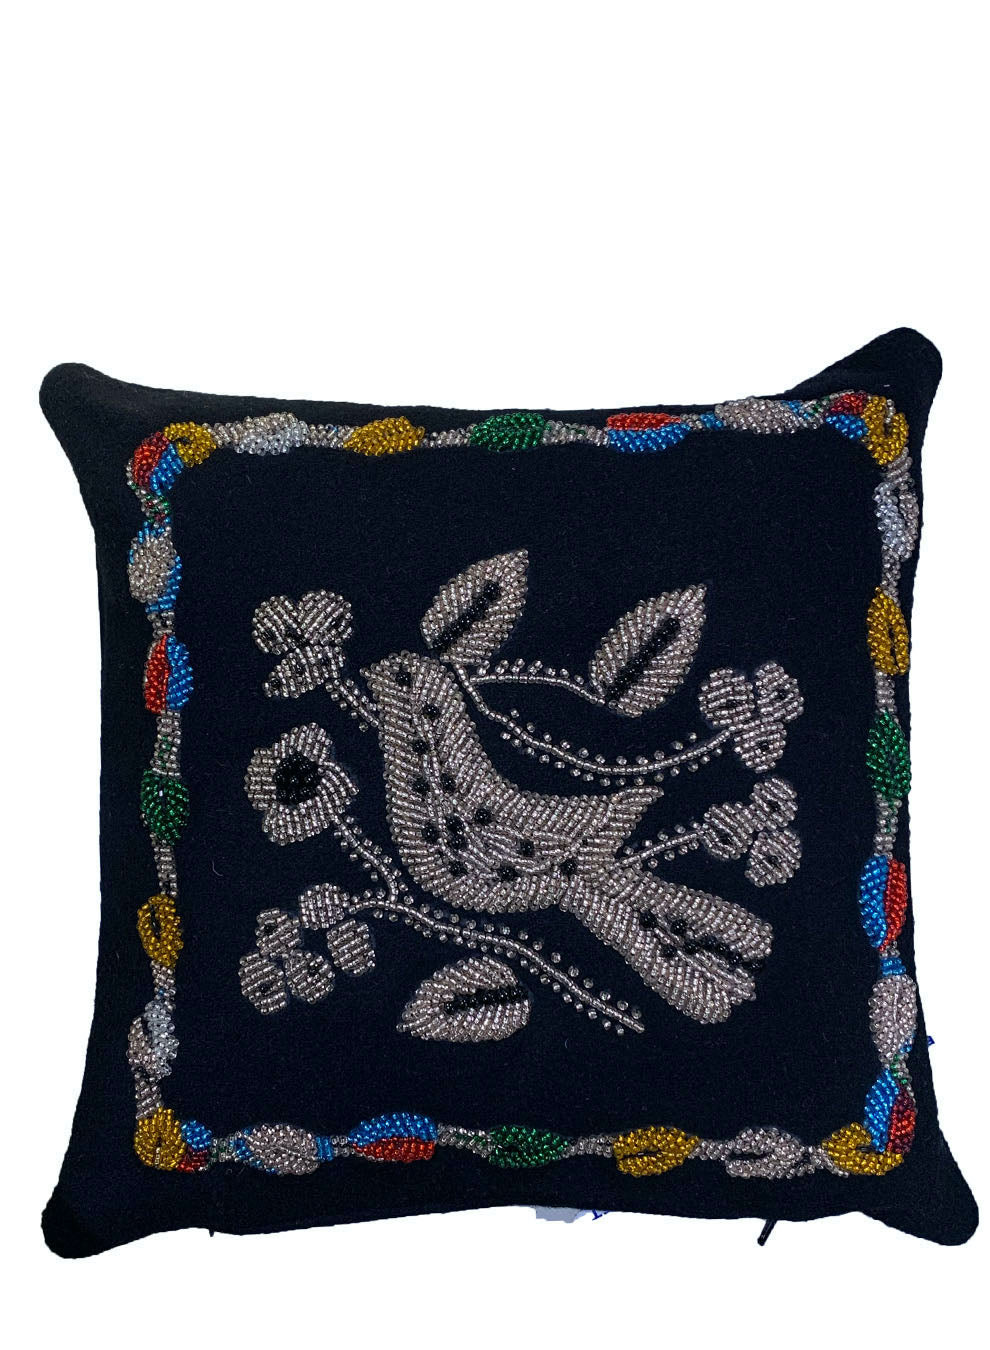 EMBROIDERED BIRDS PILLOW - Web Exclusives - Libertine